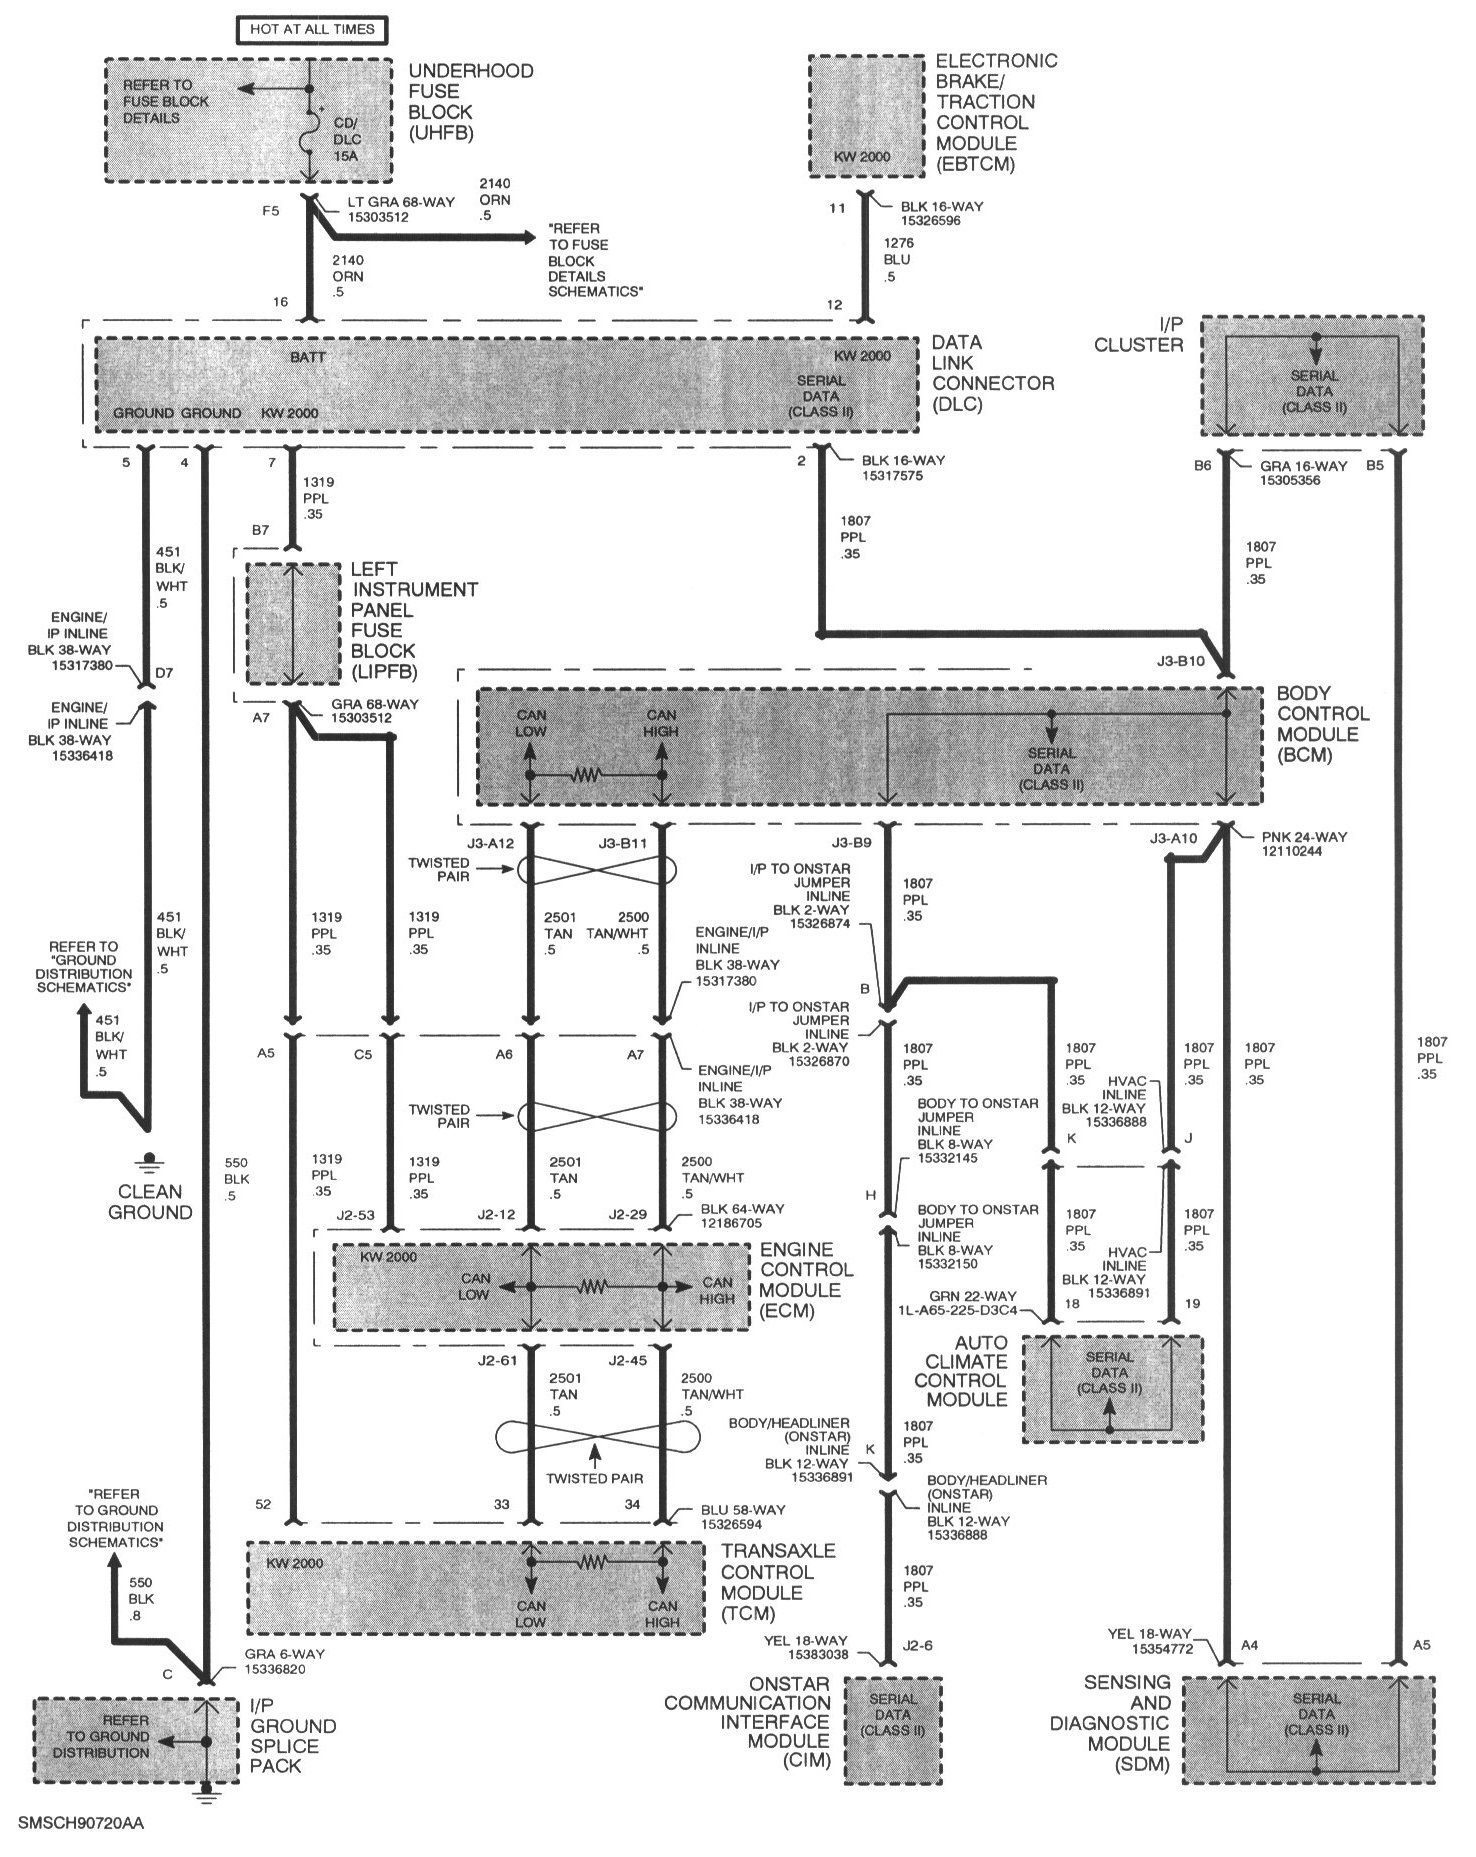 obd2 wiring diagram wiring diagram and schematic design looking for pcm pin outs and wiring diagram